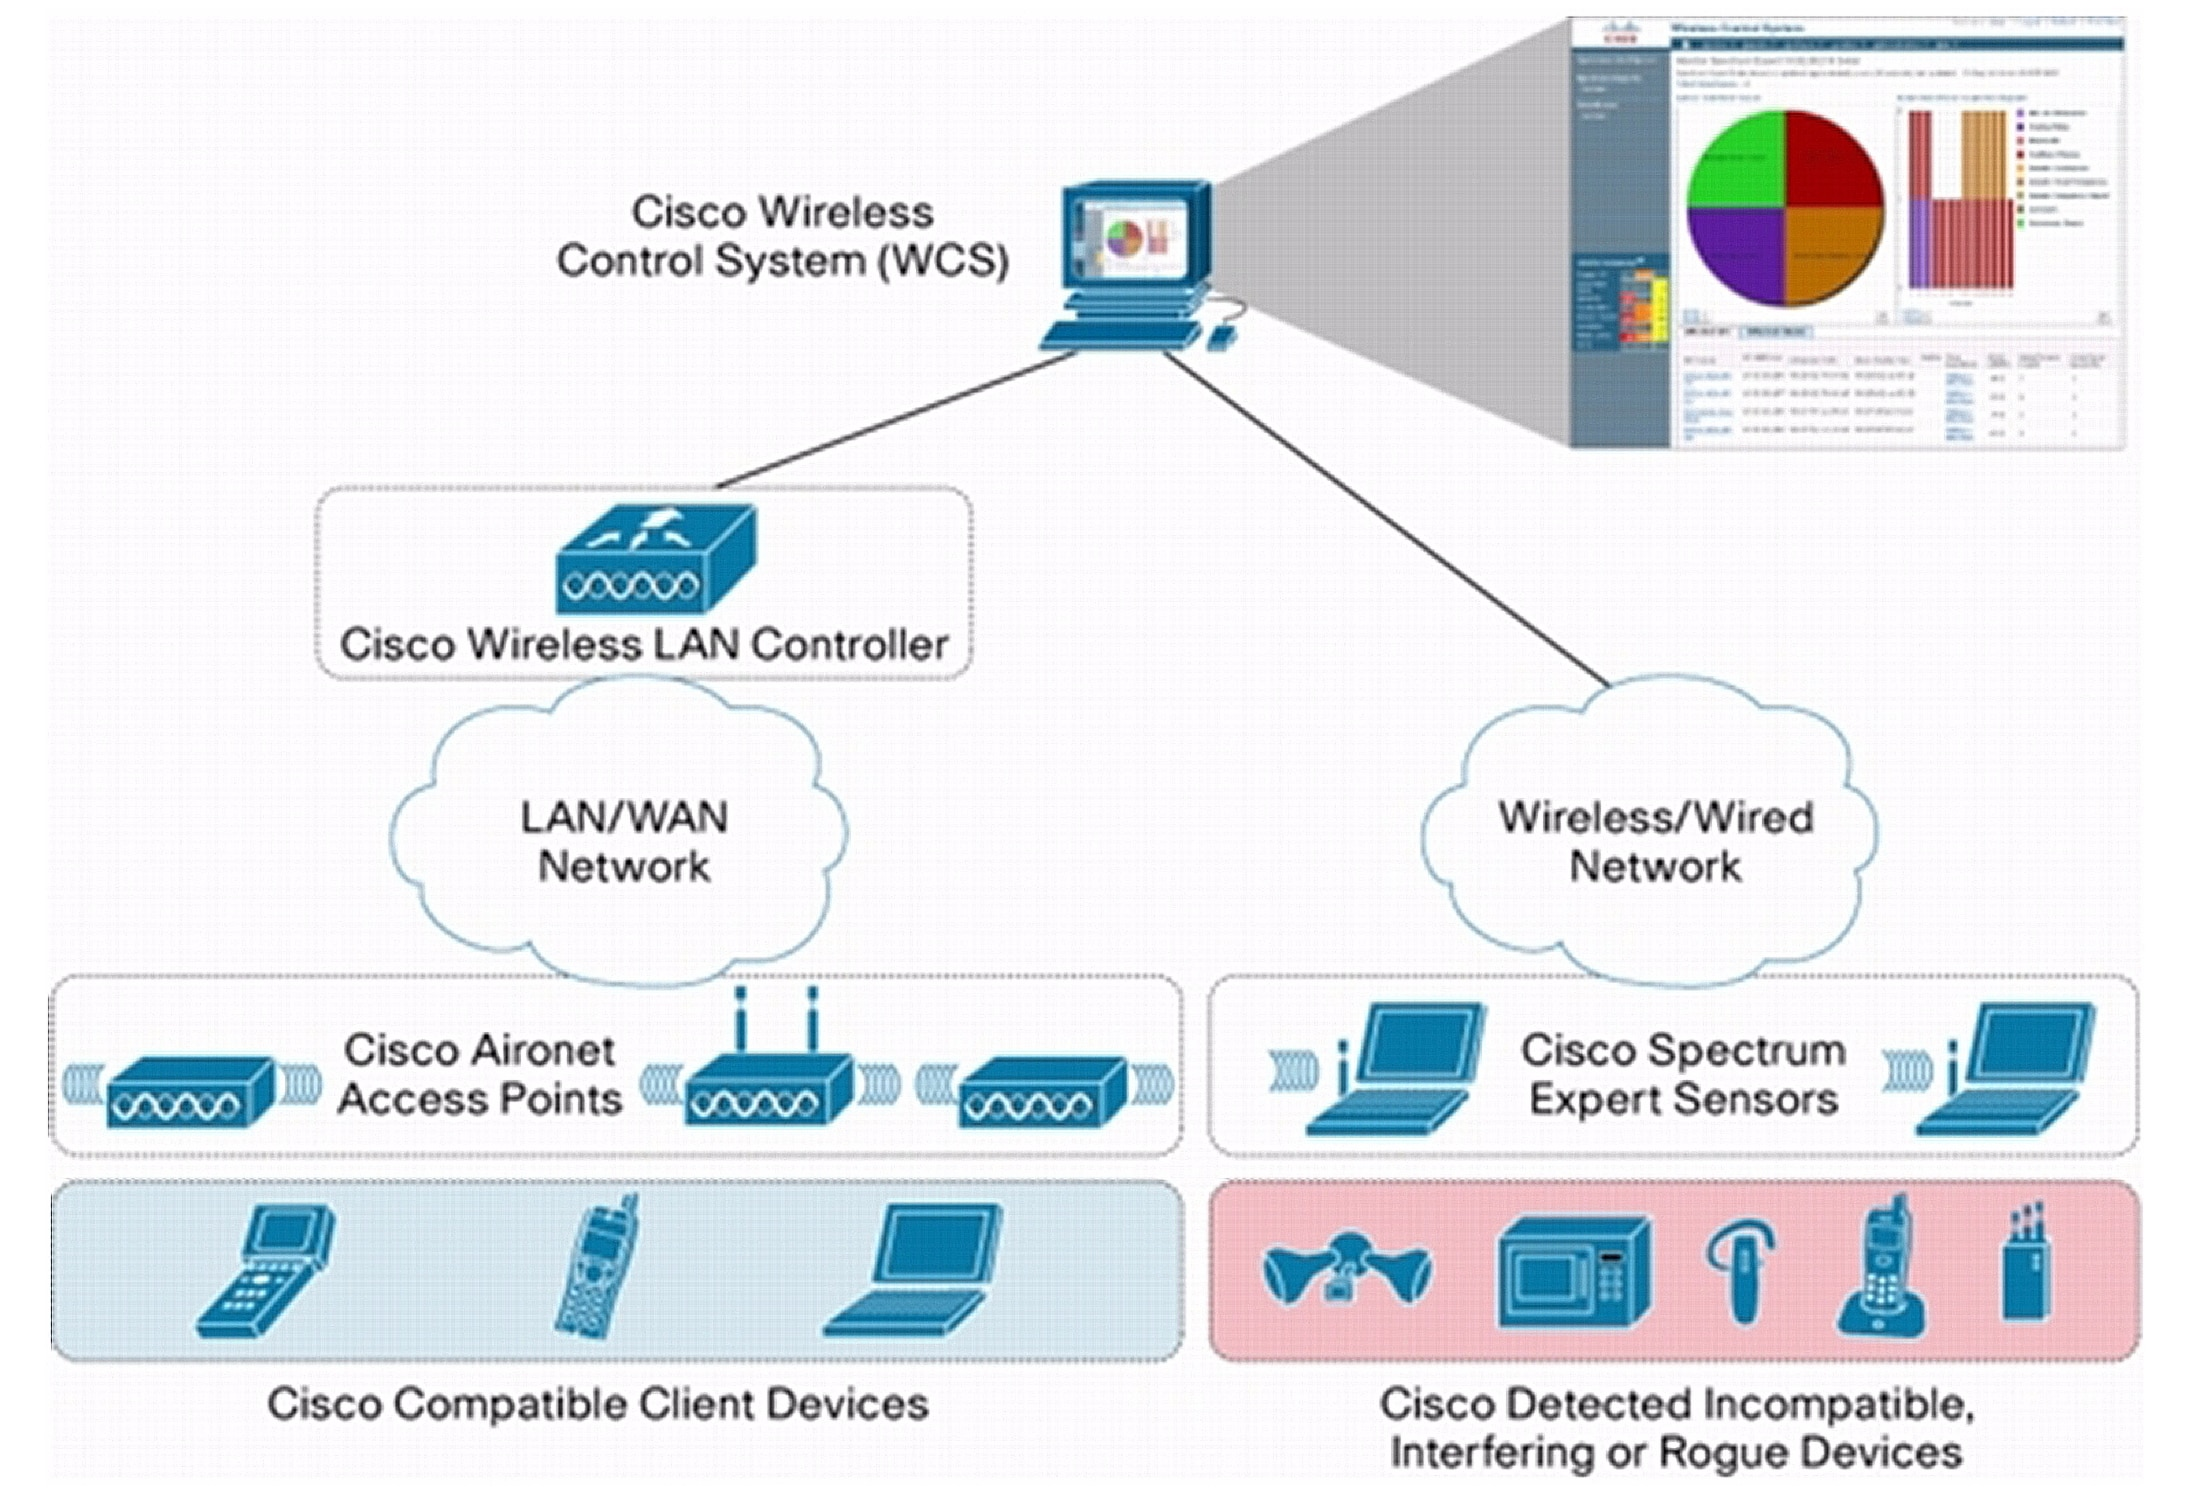 WCS and Cisco Spectrum Intelligence